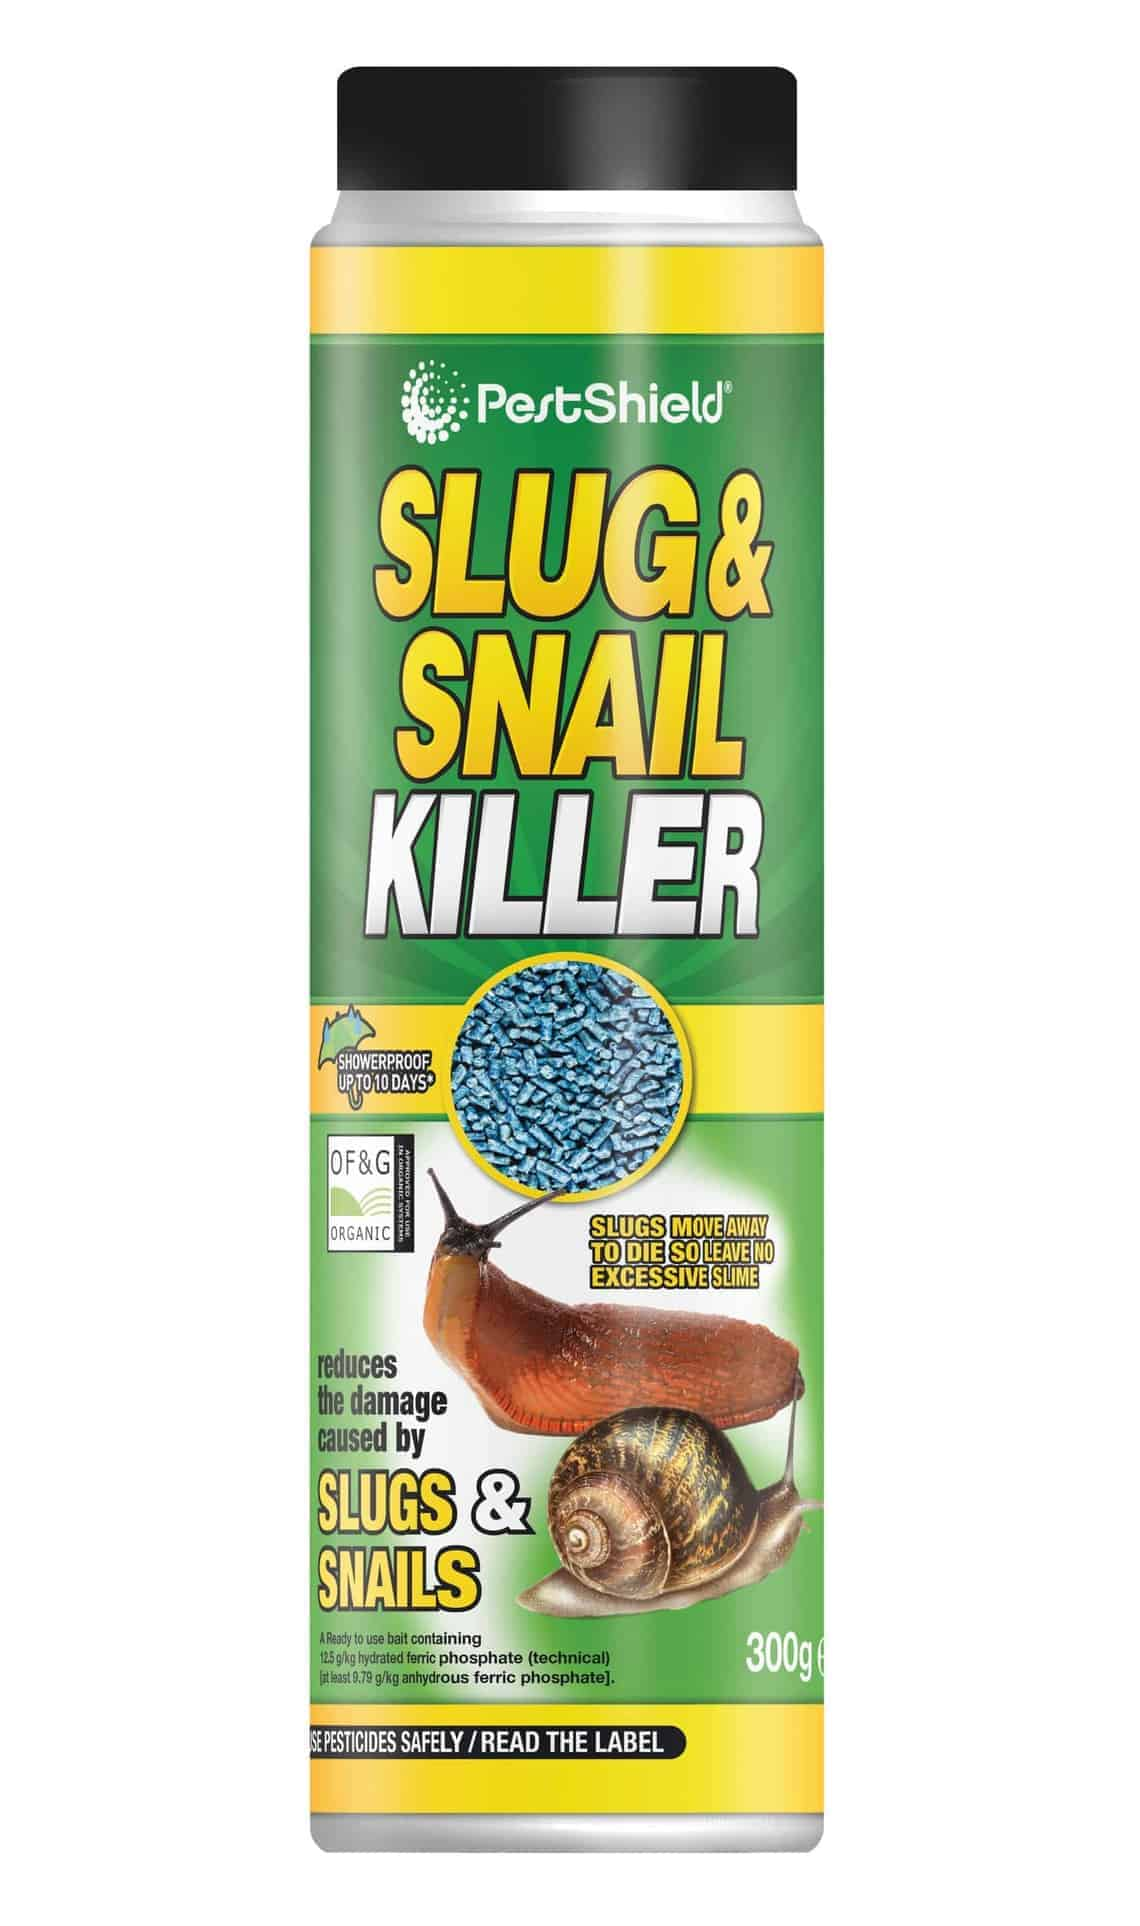 PestShield Slug+Snail Killer-300G